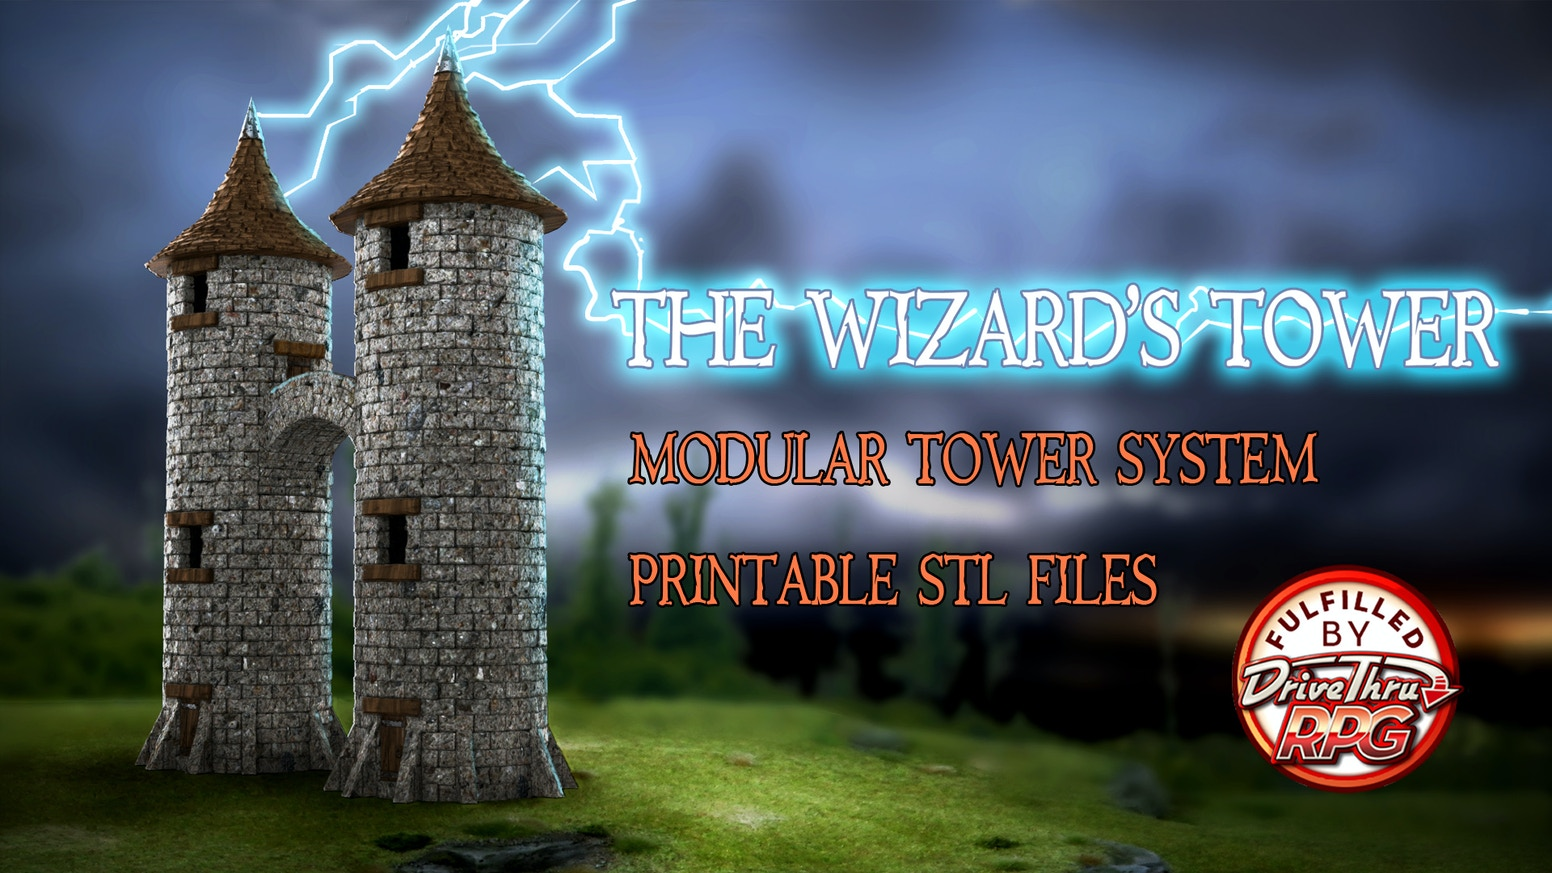 3D printable STL files for a modular tower scaled for 28mm wargaming tabletop miniatures. Use your 3D printer to build it your own way.